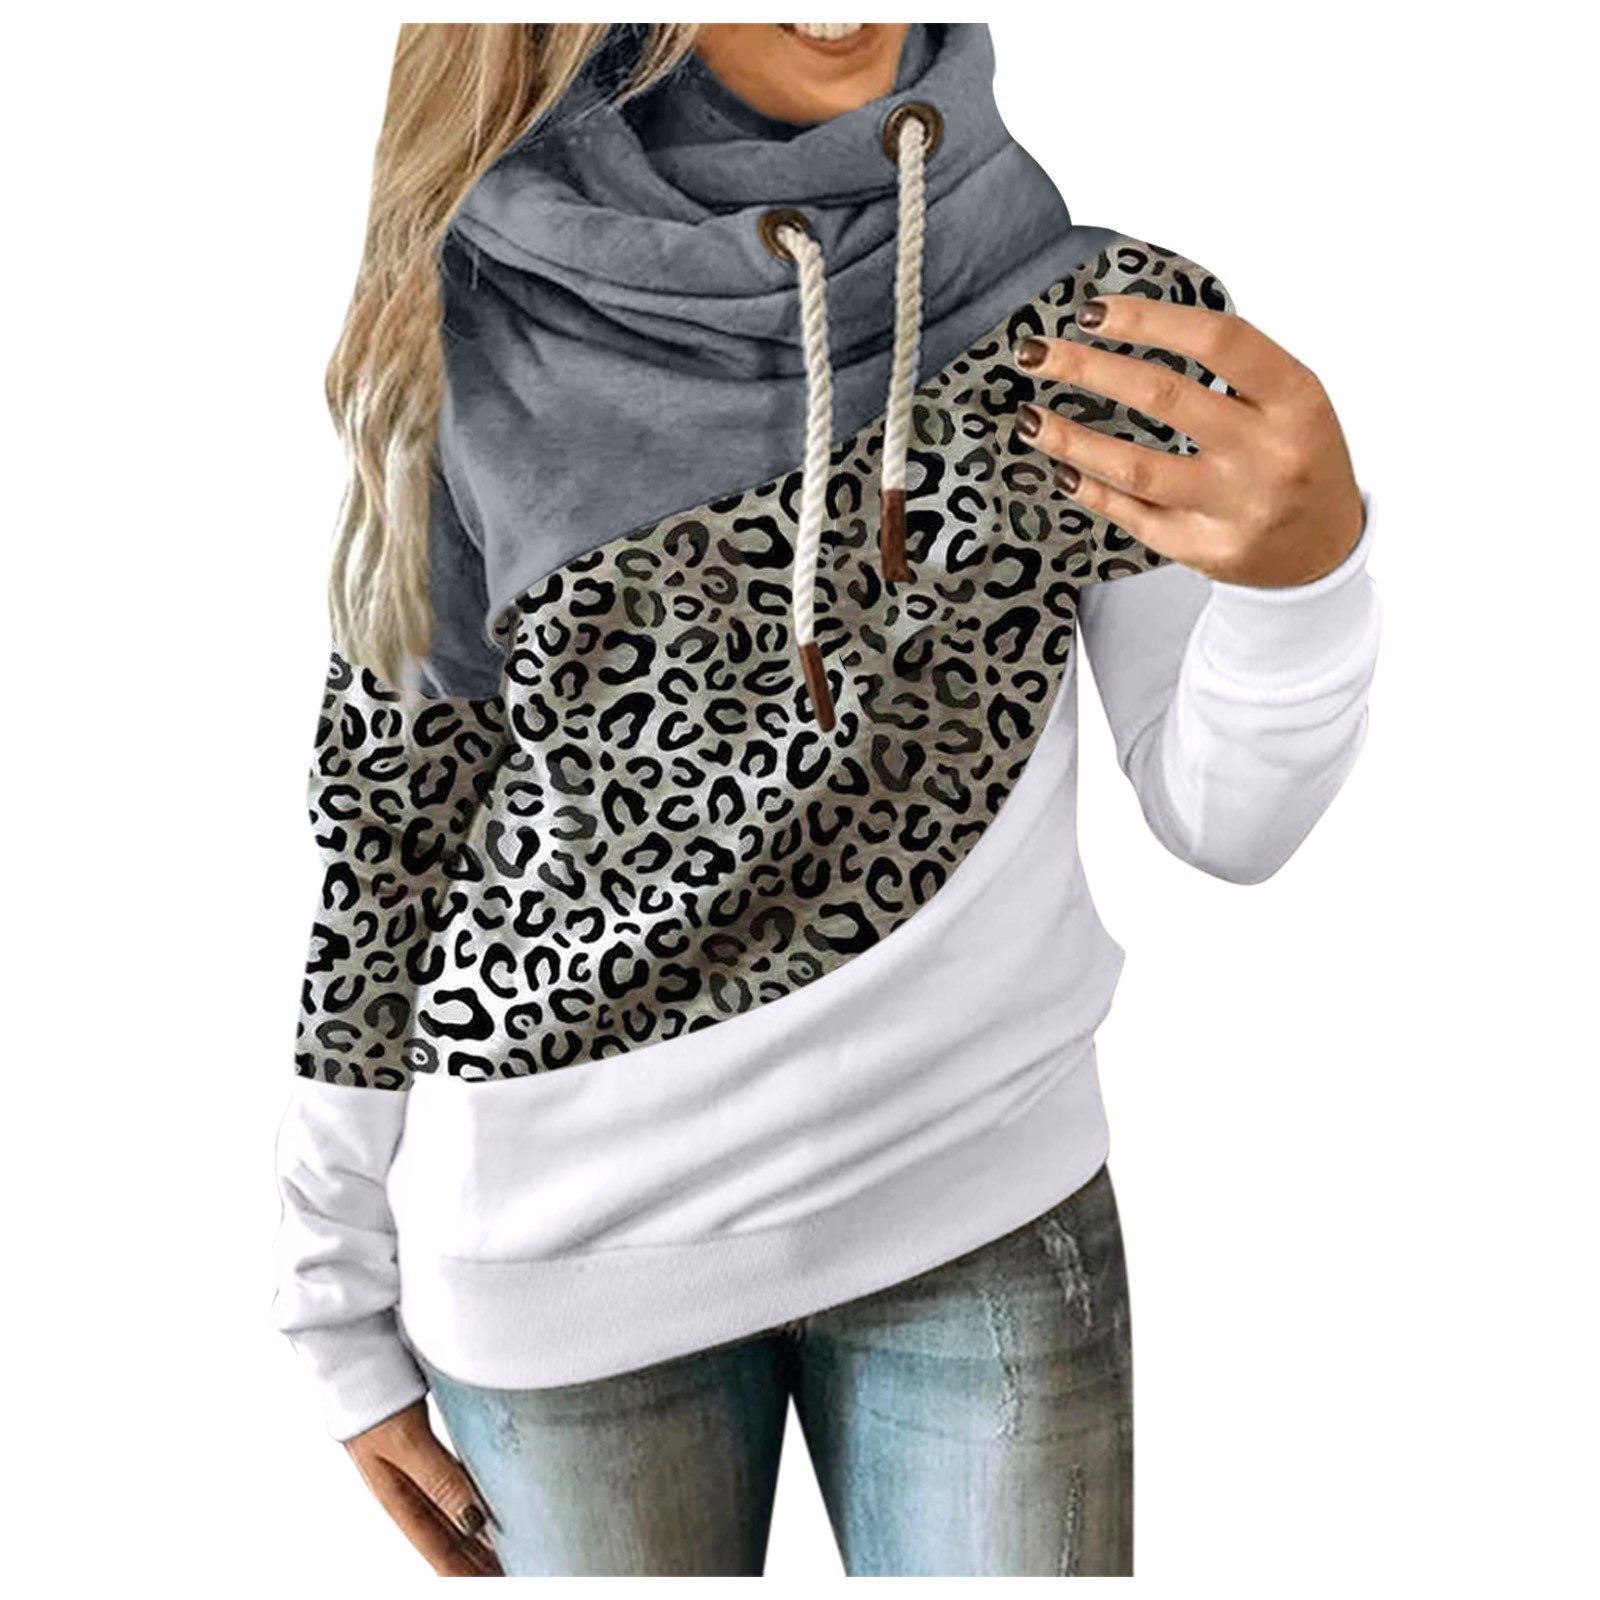 Hot Sale Women Casual Solid Contrast Long Sleeve Hoodie Sweatshirt Patchwork Printed Tops Sudaderas Mujer 2020 F Fast Ship 11